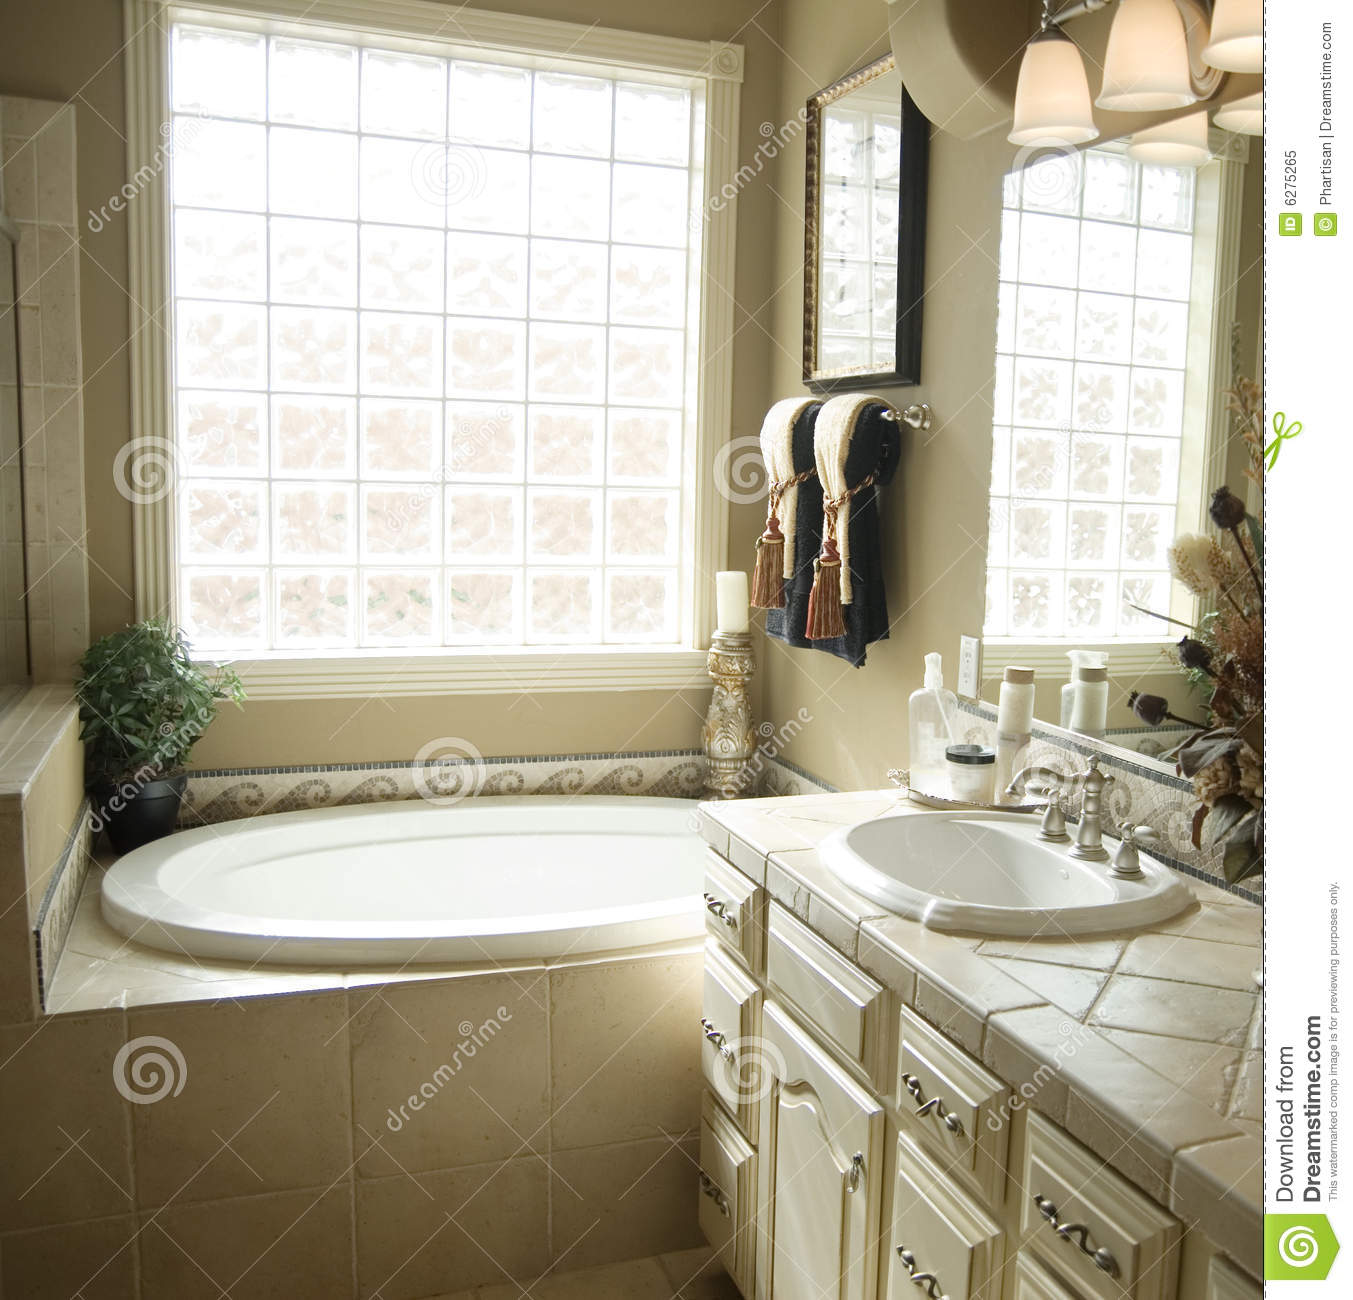 Beautiful Bathroom Interior Design Stock Image Image 6275265